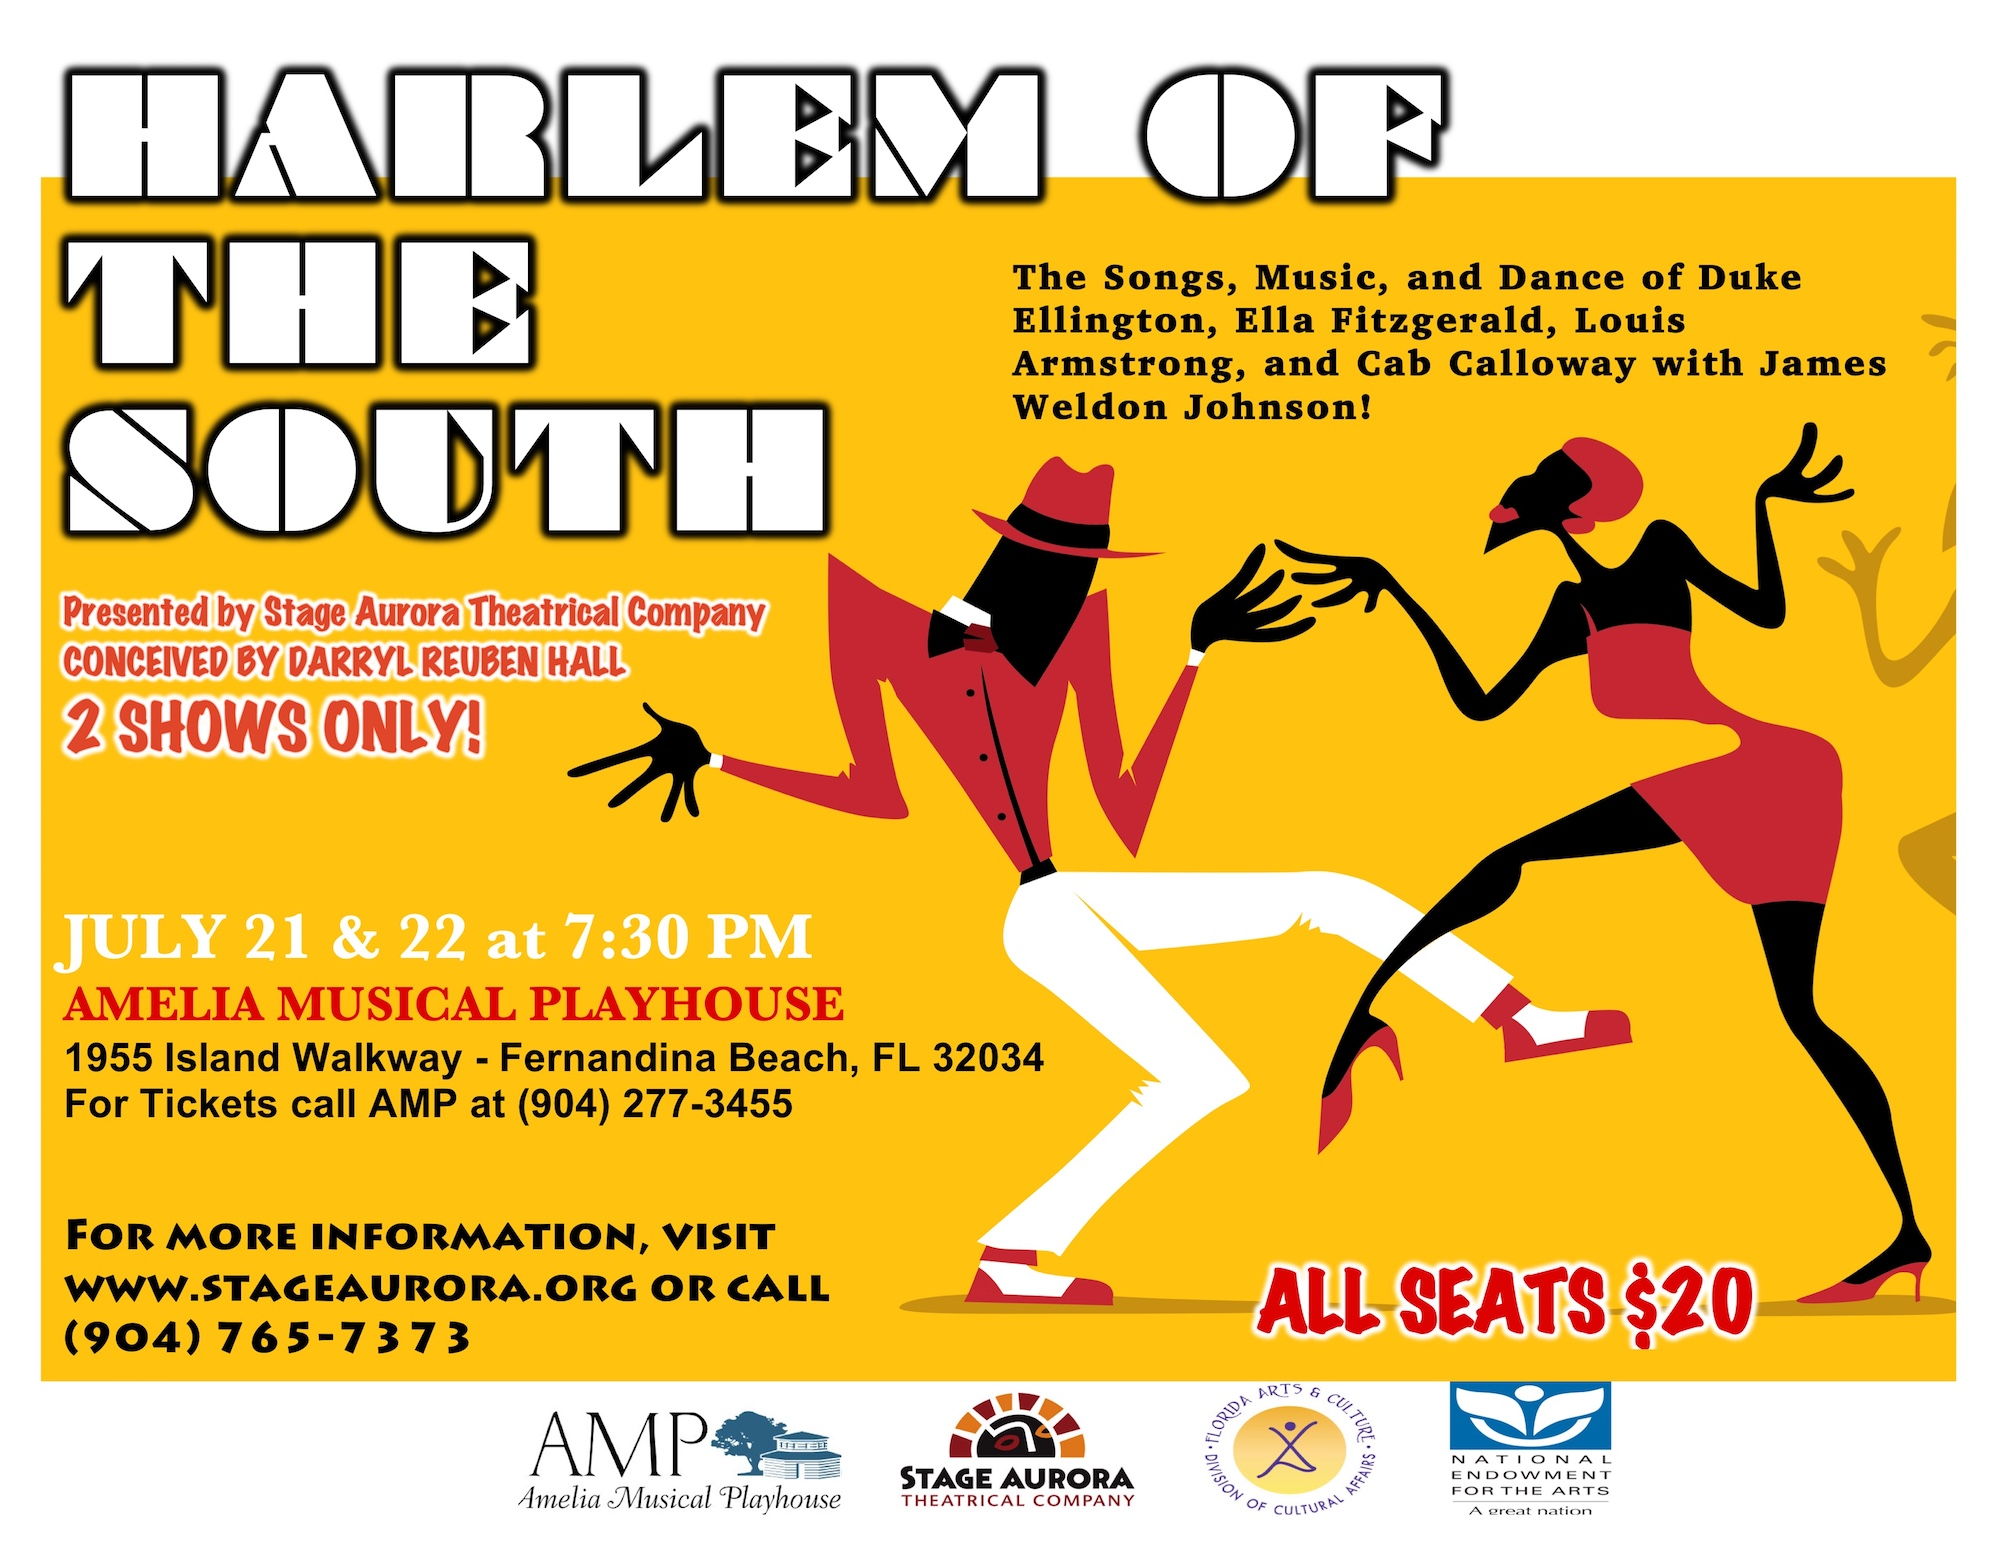 Harlem of the South